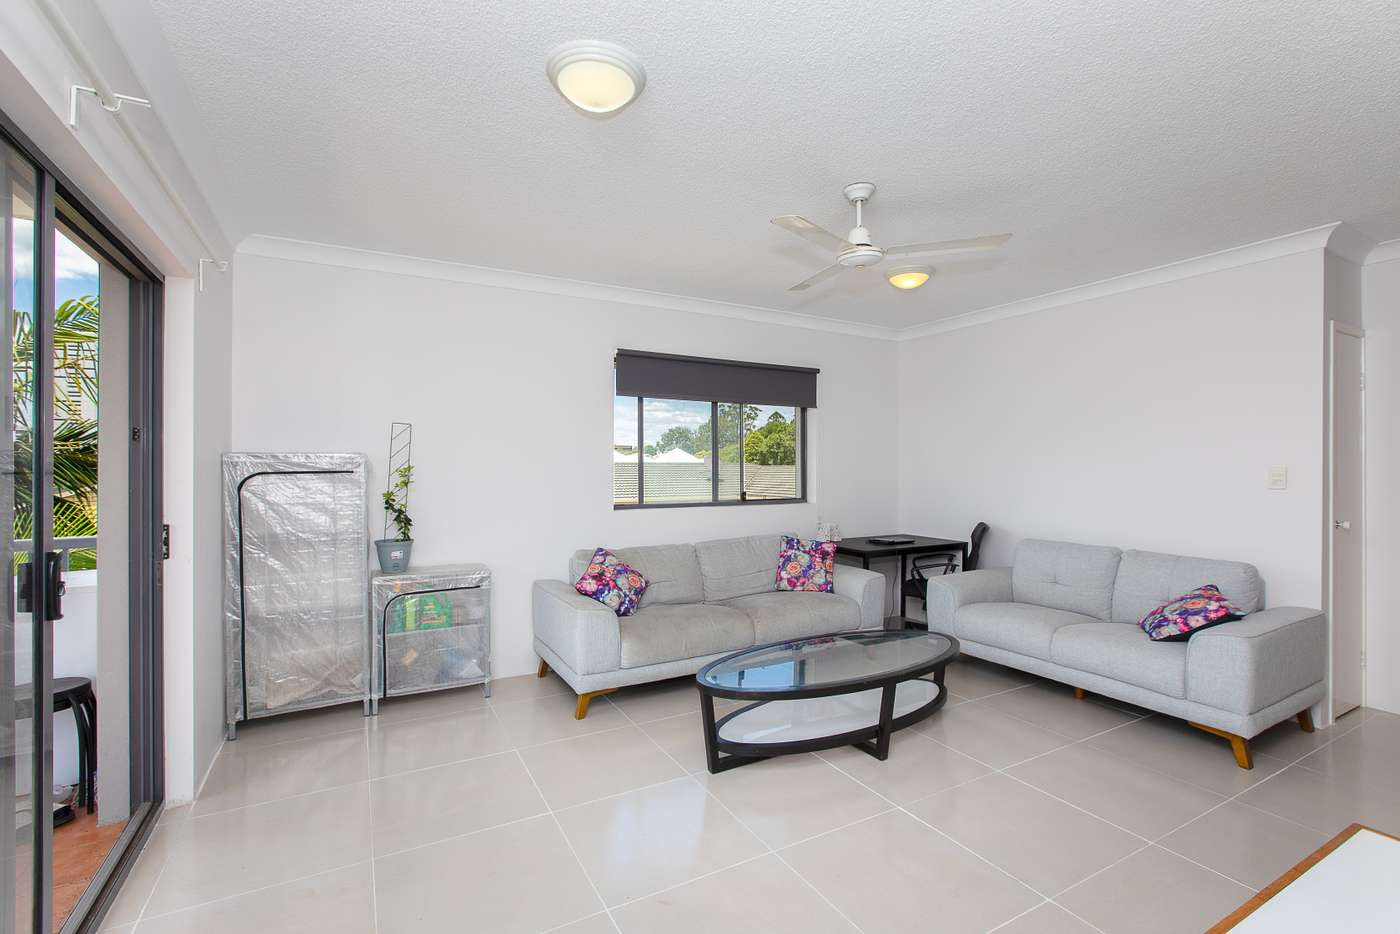 Main view of Homely unit listing, 29 Bell St, Kangaroo Point QLD 4169